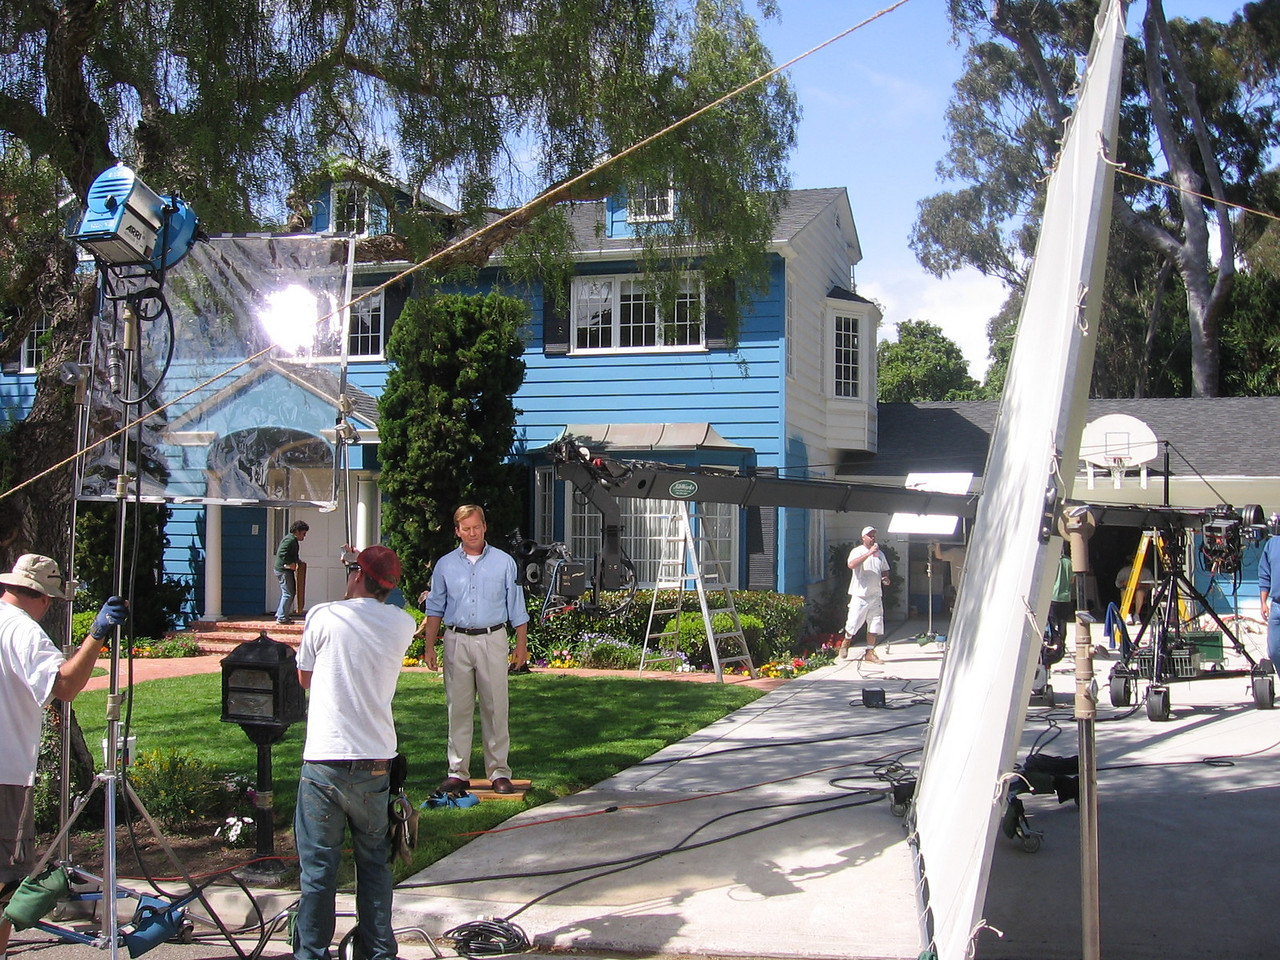 Behind the scenes on another commercial with the famous Mark Koonce of Jibworks.